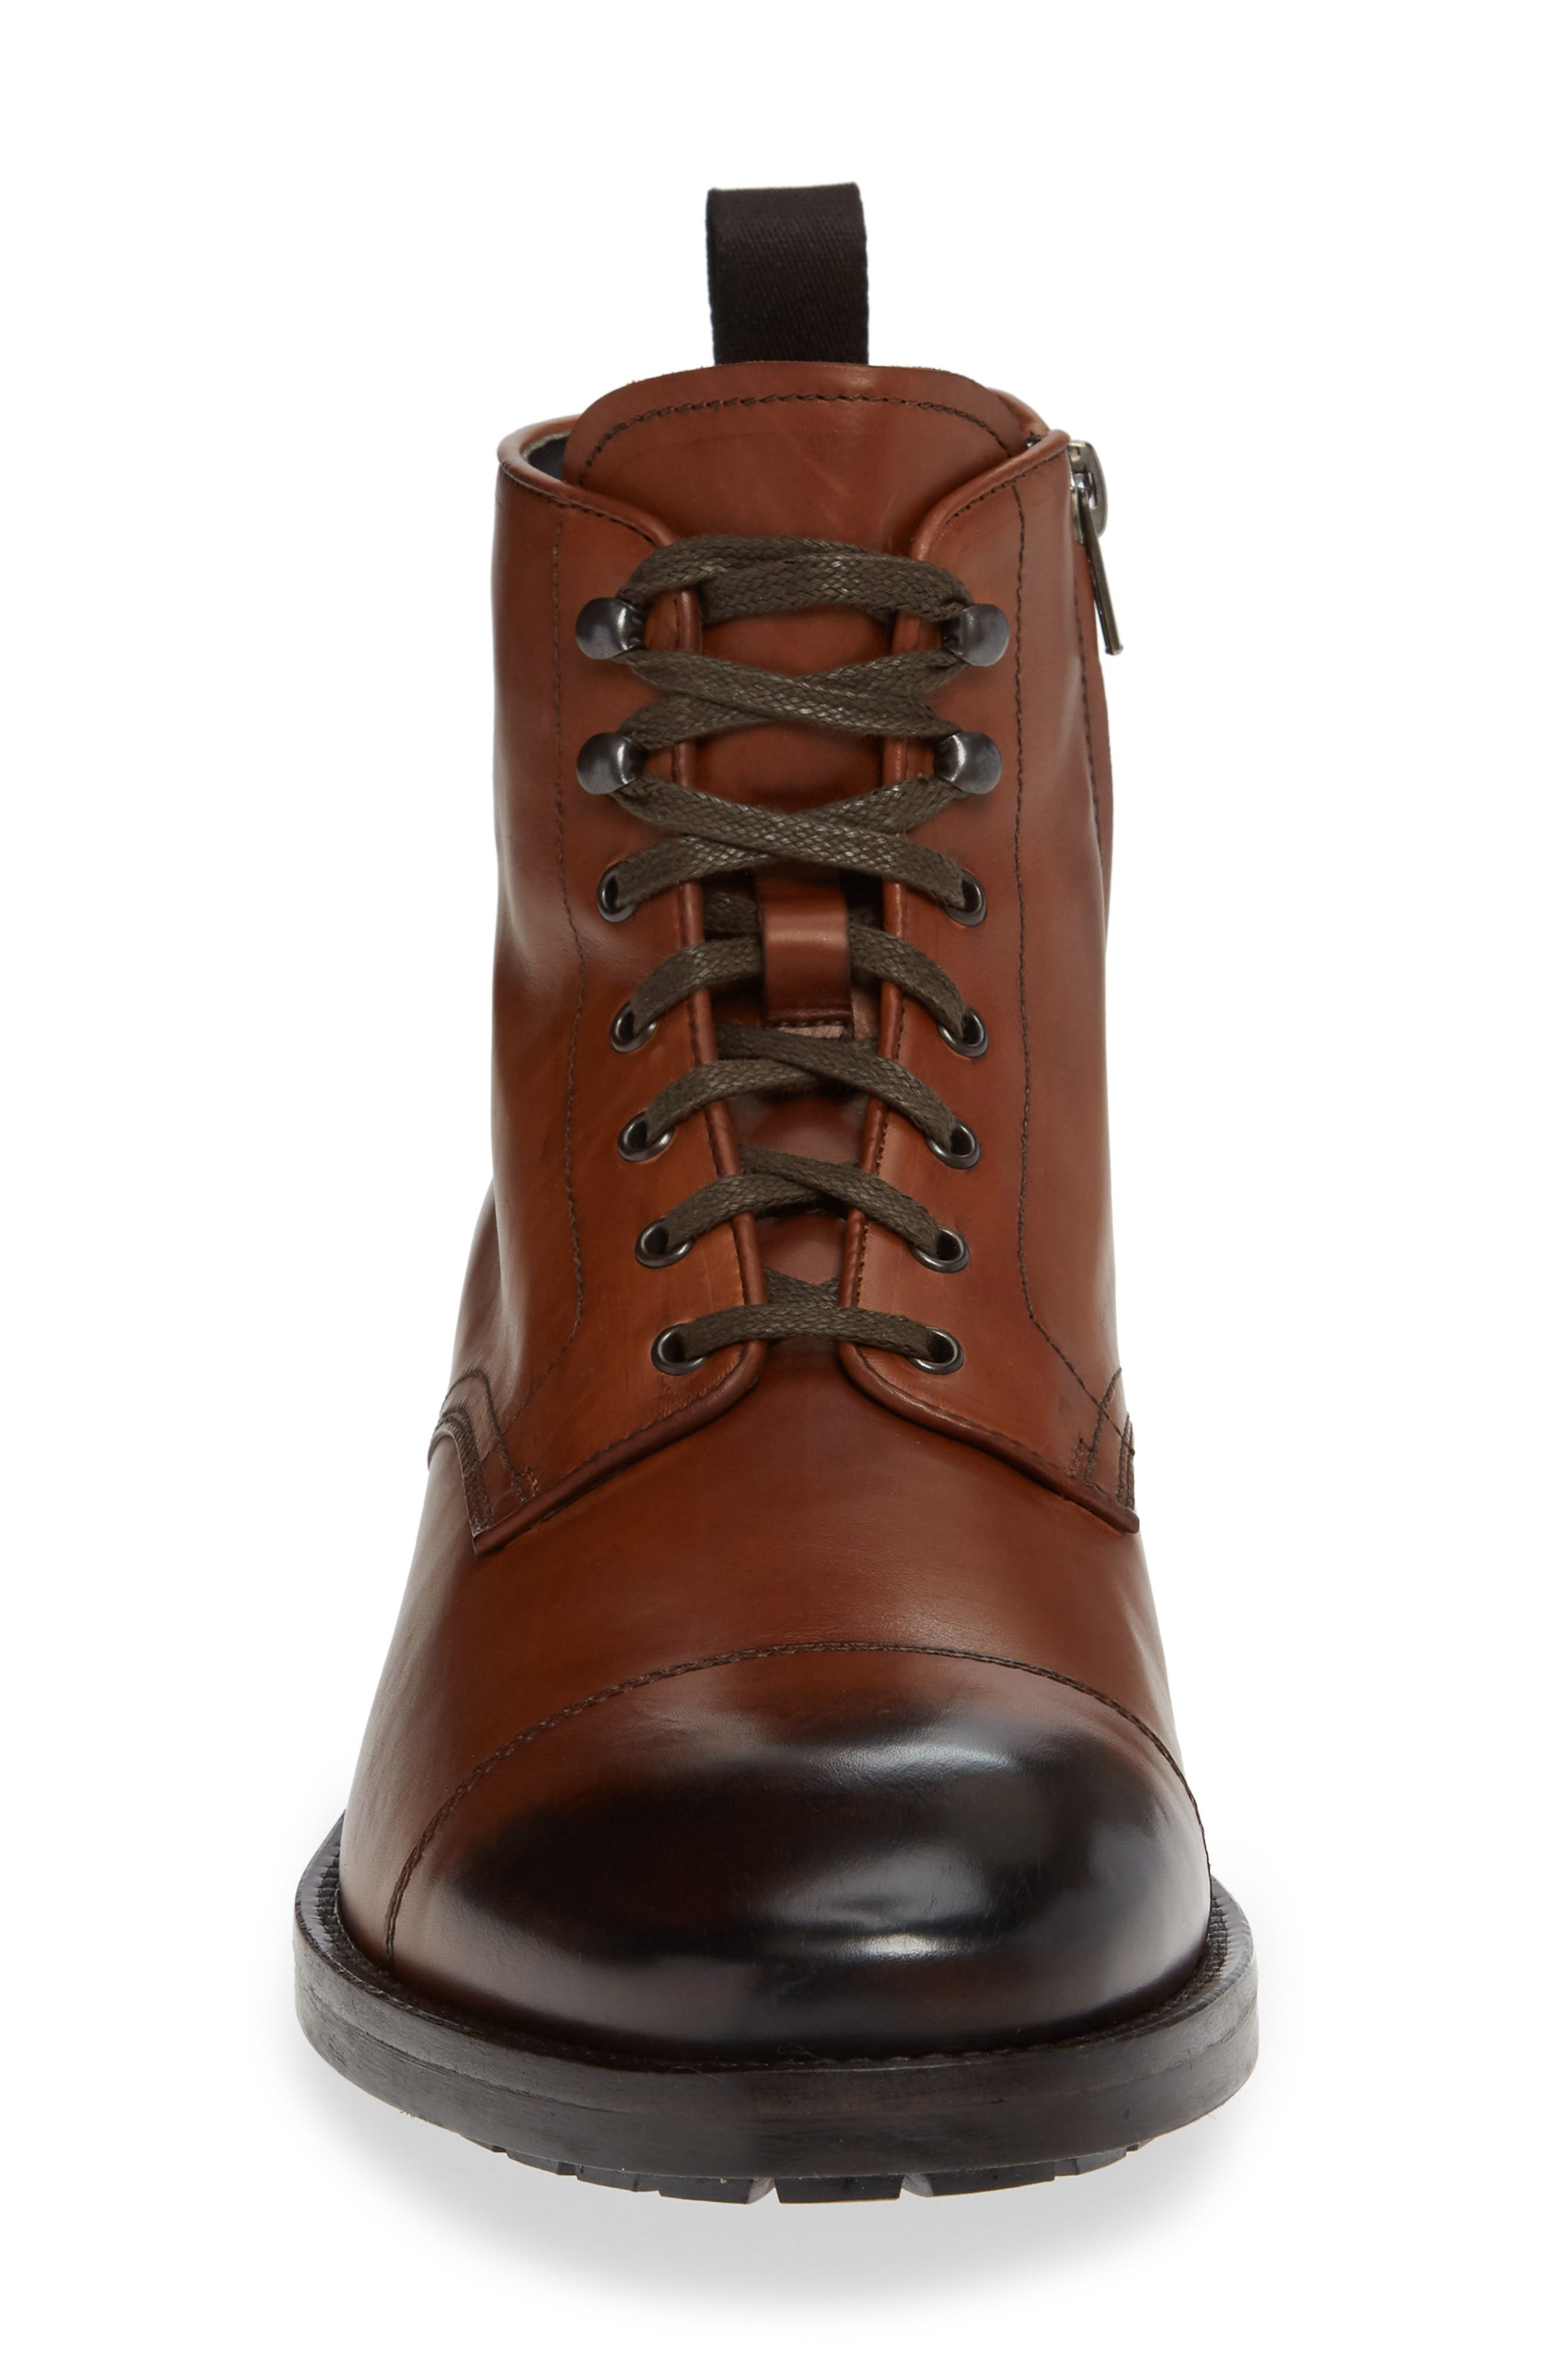 Concord Cap Toe Boot,                             Alternate thumbnail 4, color,                             BROWN LEATHER